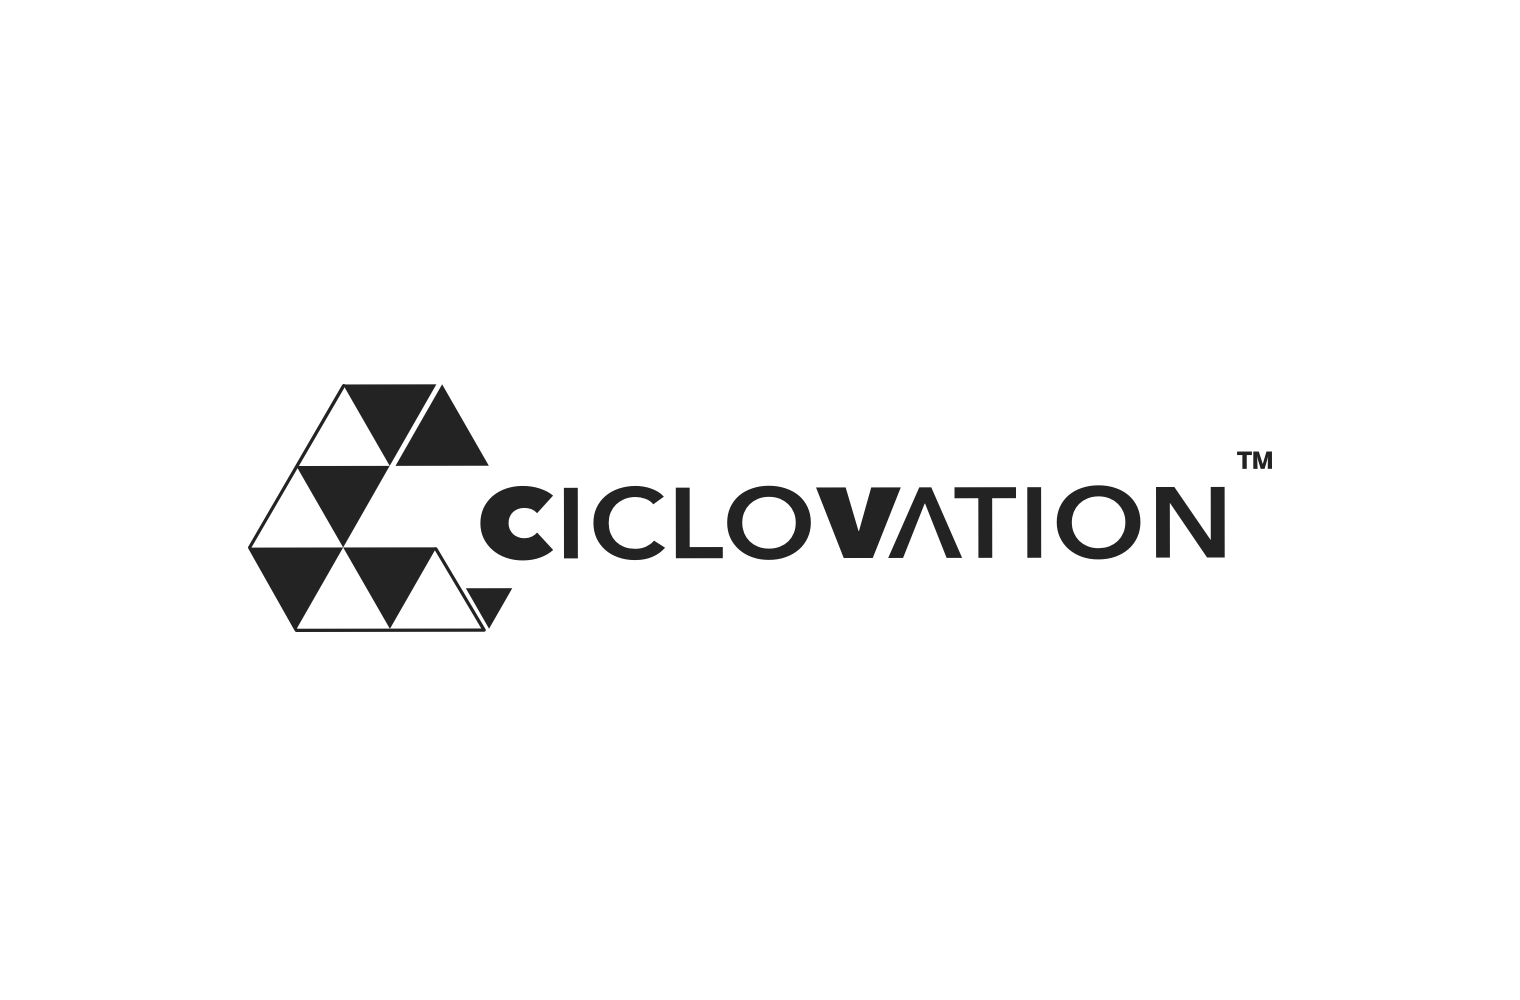 Ciclovation